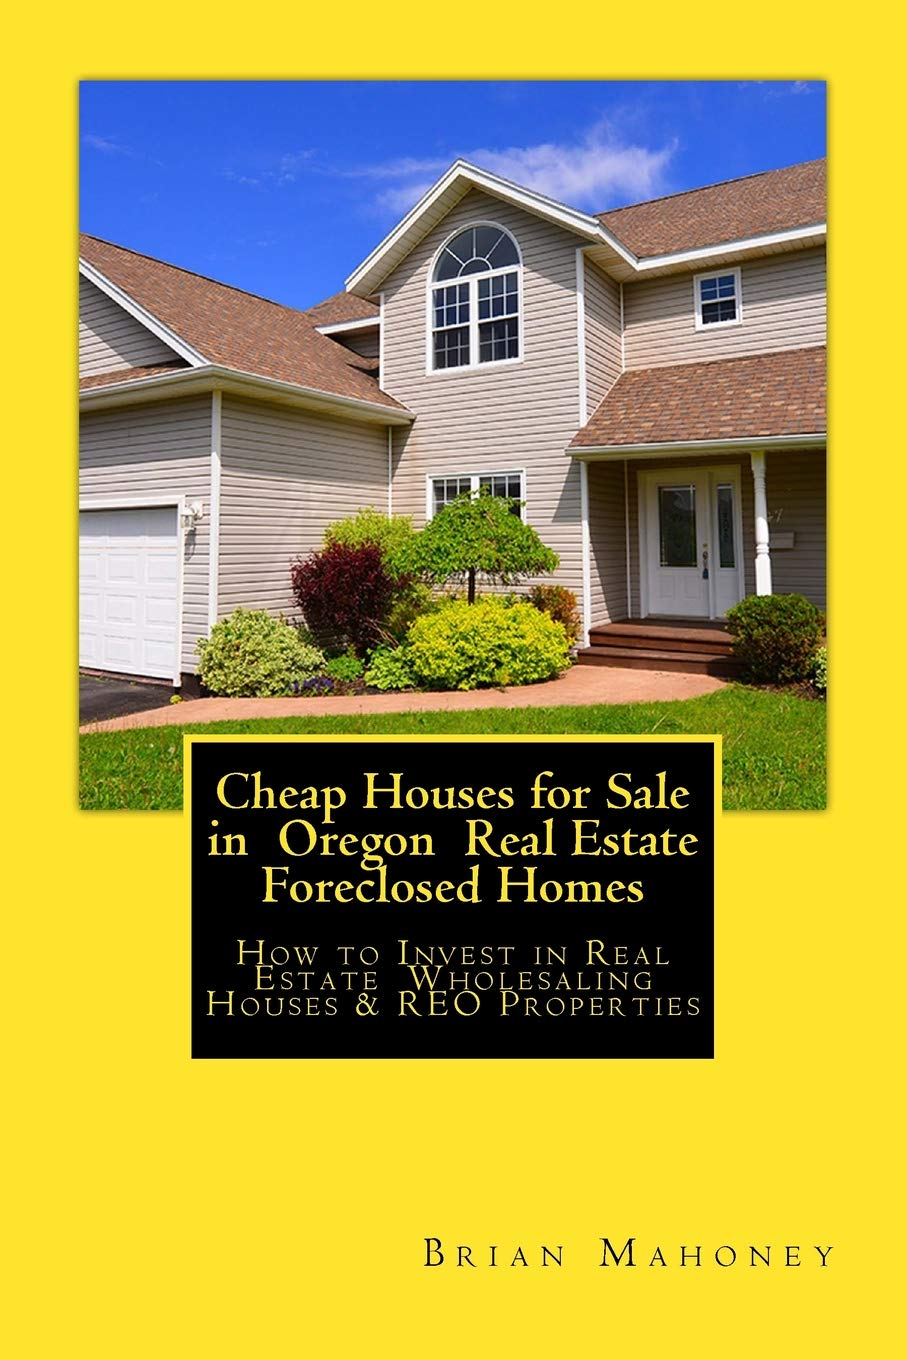 Amazon com: Cheap Houses for Sale in Oregon Real Estate